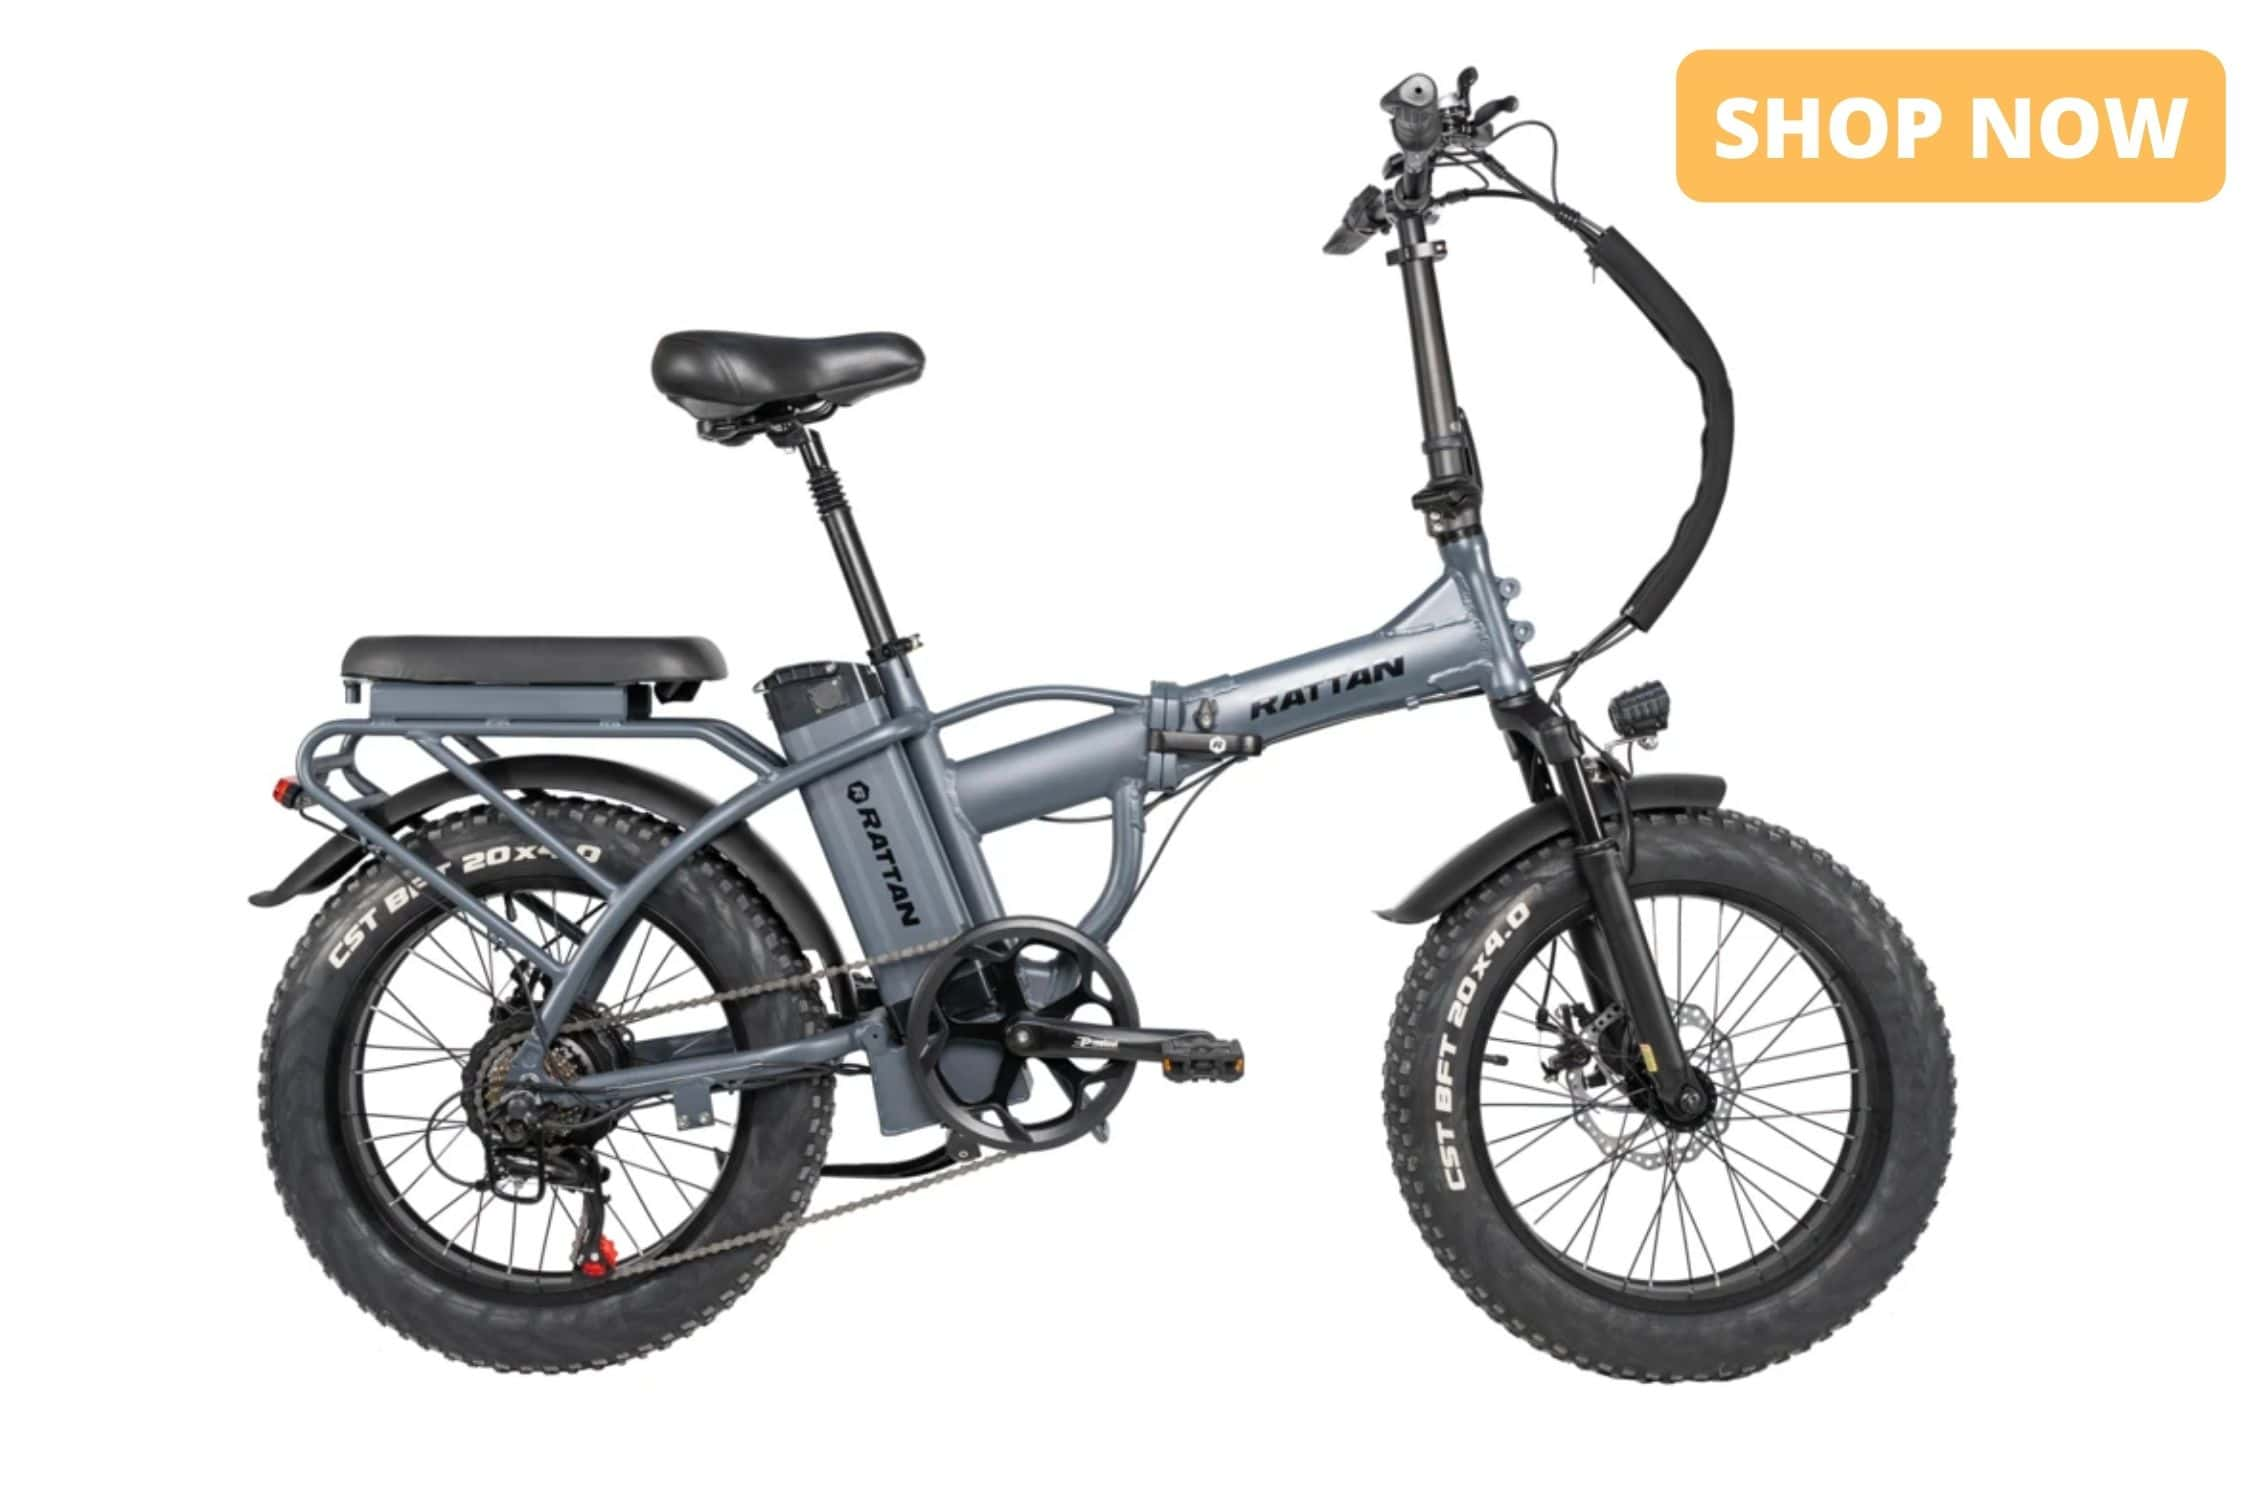 Rattan LM750 Electric Bike Product Page